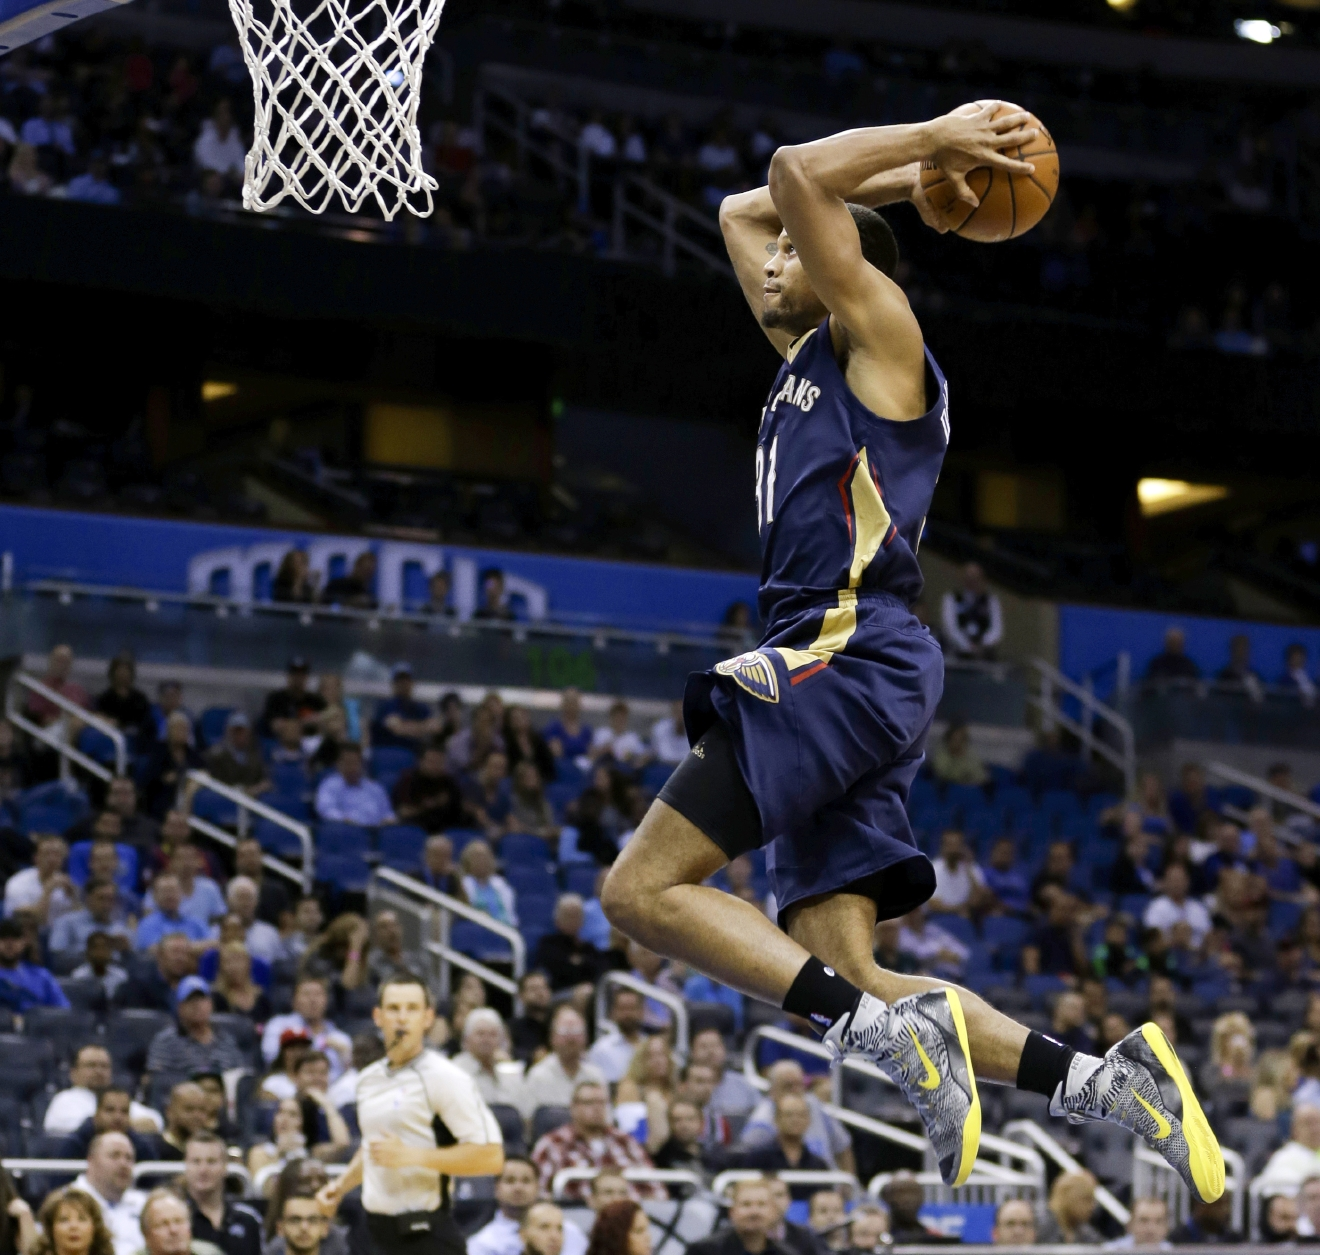 FILE - In this Oct. 21, 2015, file photo, New Orleans Pelicans' Bryce Dejean-Jones dunks the ball against the Orlando Magic during the first half of an NBA preseason basketball game in Orlando, Fla. Police say Saturday, May 28, 2016,  Dejean-Jones was fatally shot after breaking down the door to a Dallas apartment. Sr. Cpl. DeMarquis Black said in a statement that officers were called early Saturday morning and found the 23-year-old player collapsed in an outdoor passageway. He was taken to a hospital where he died. (AP Photo/John Raoux, File)